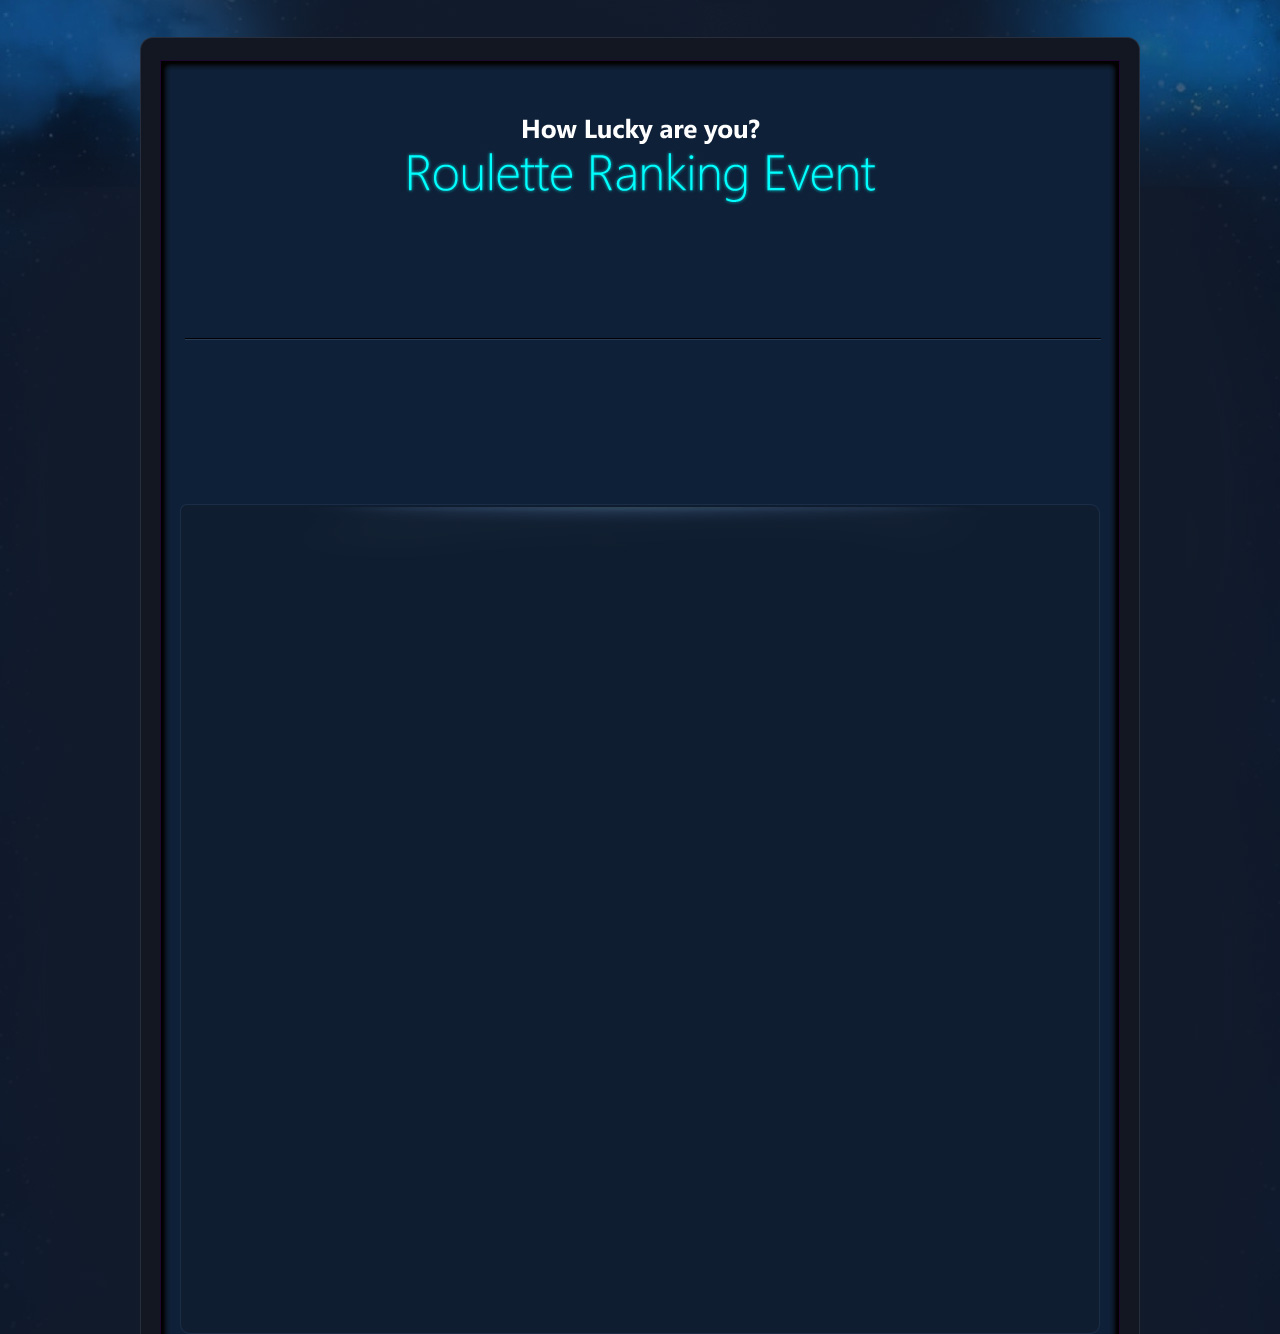 Roulette Ranking Event